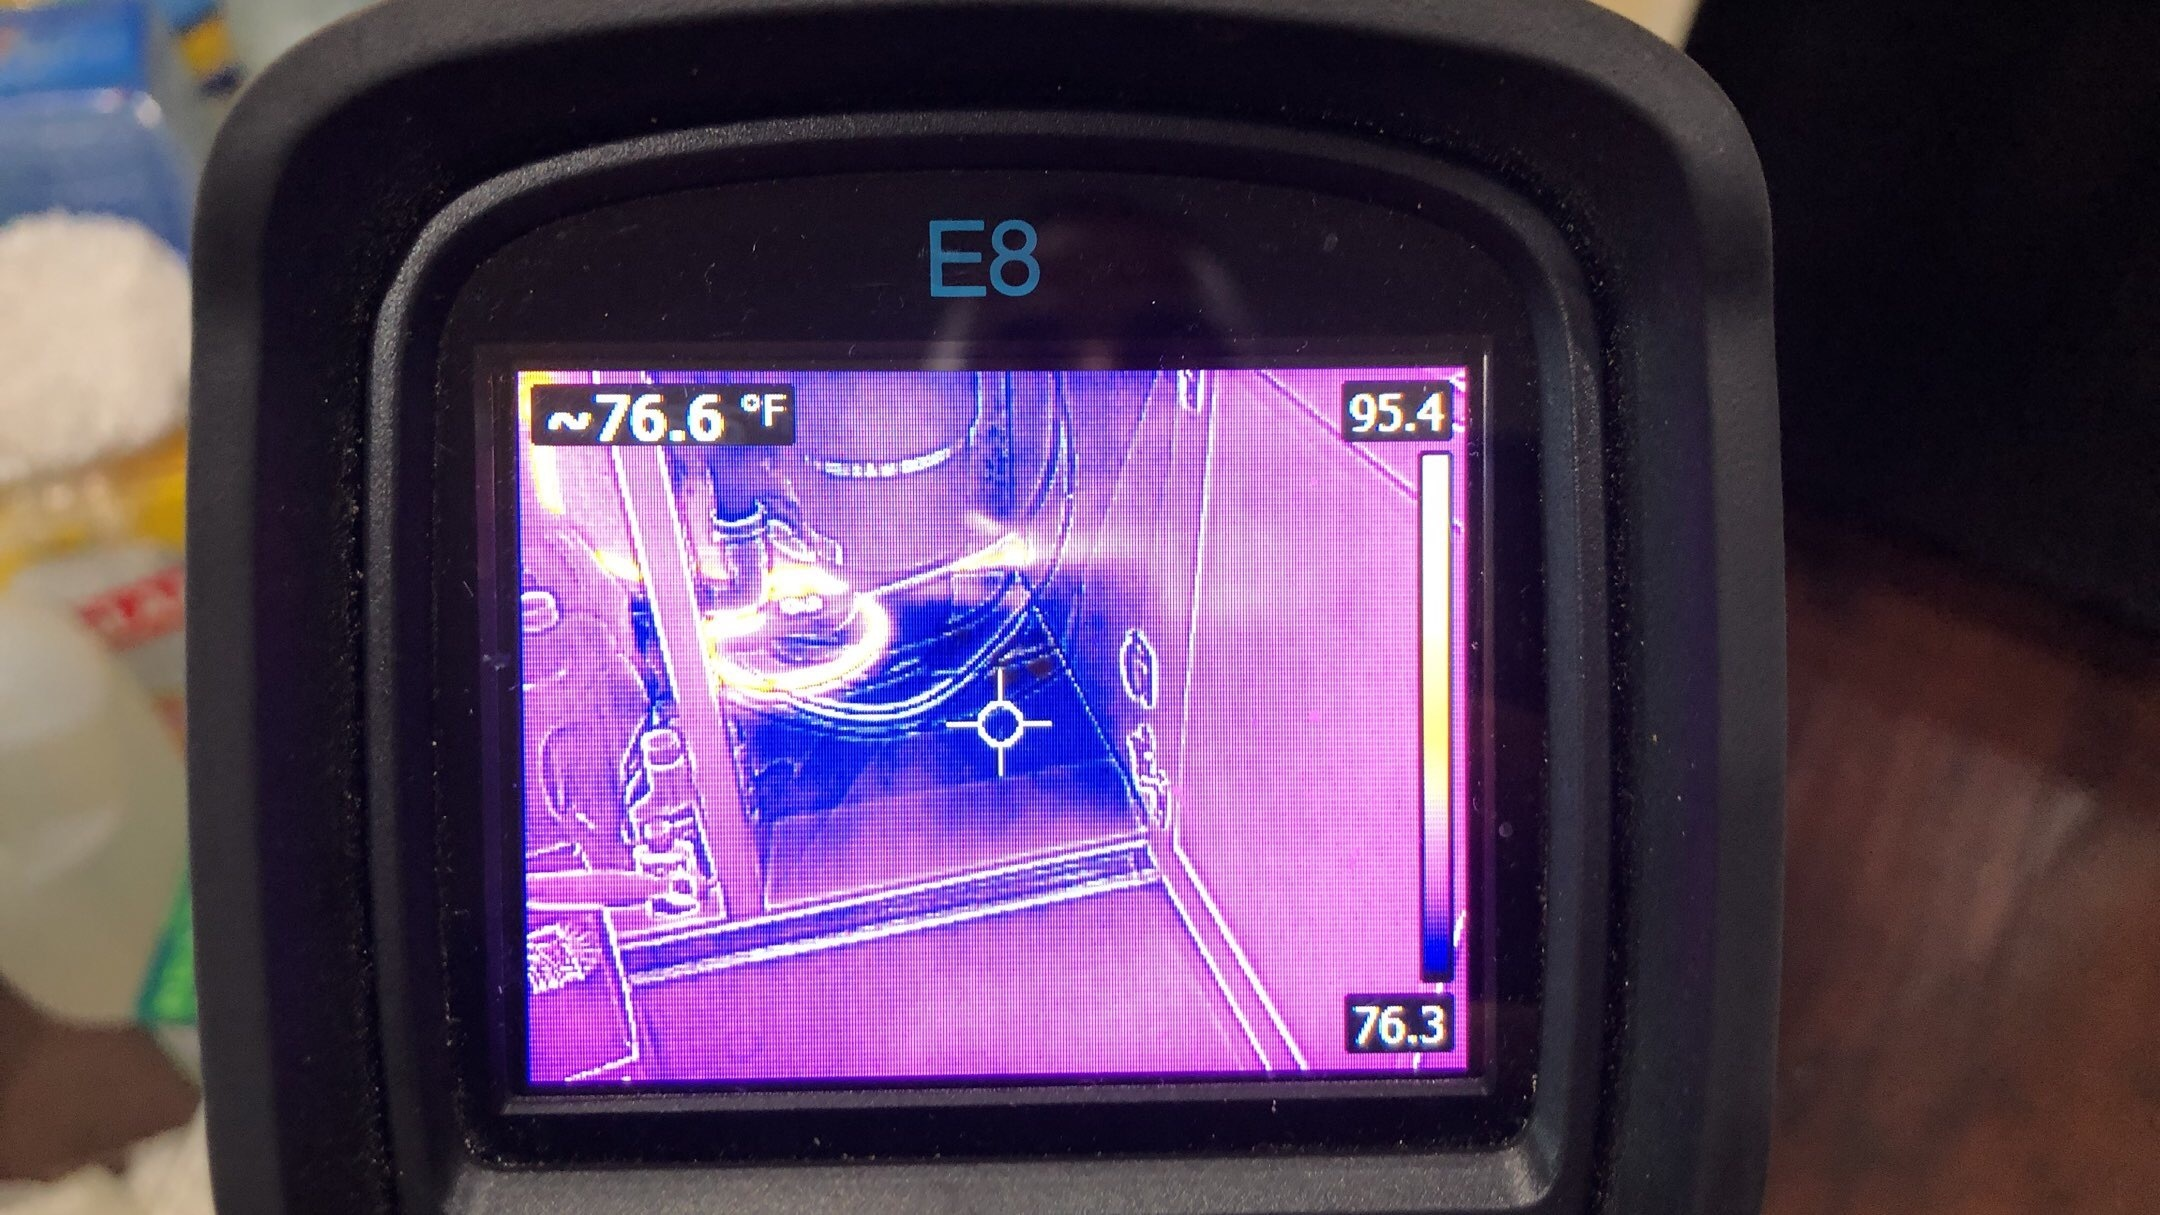 Thermal camera to assist in finding water damage